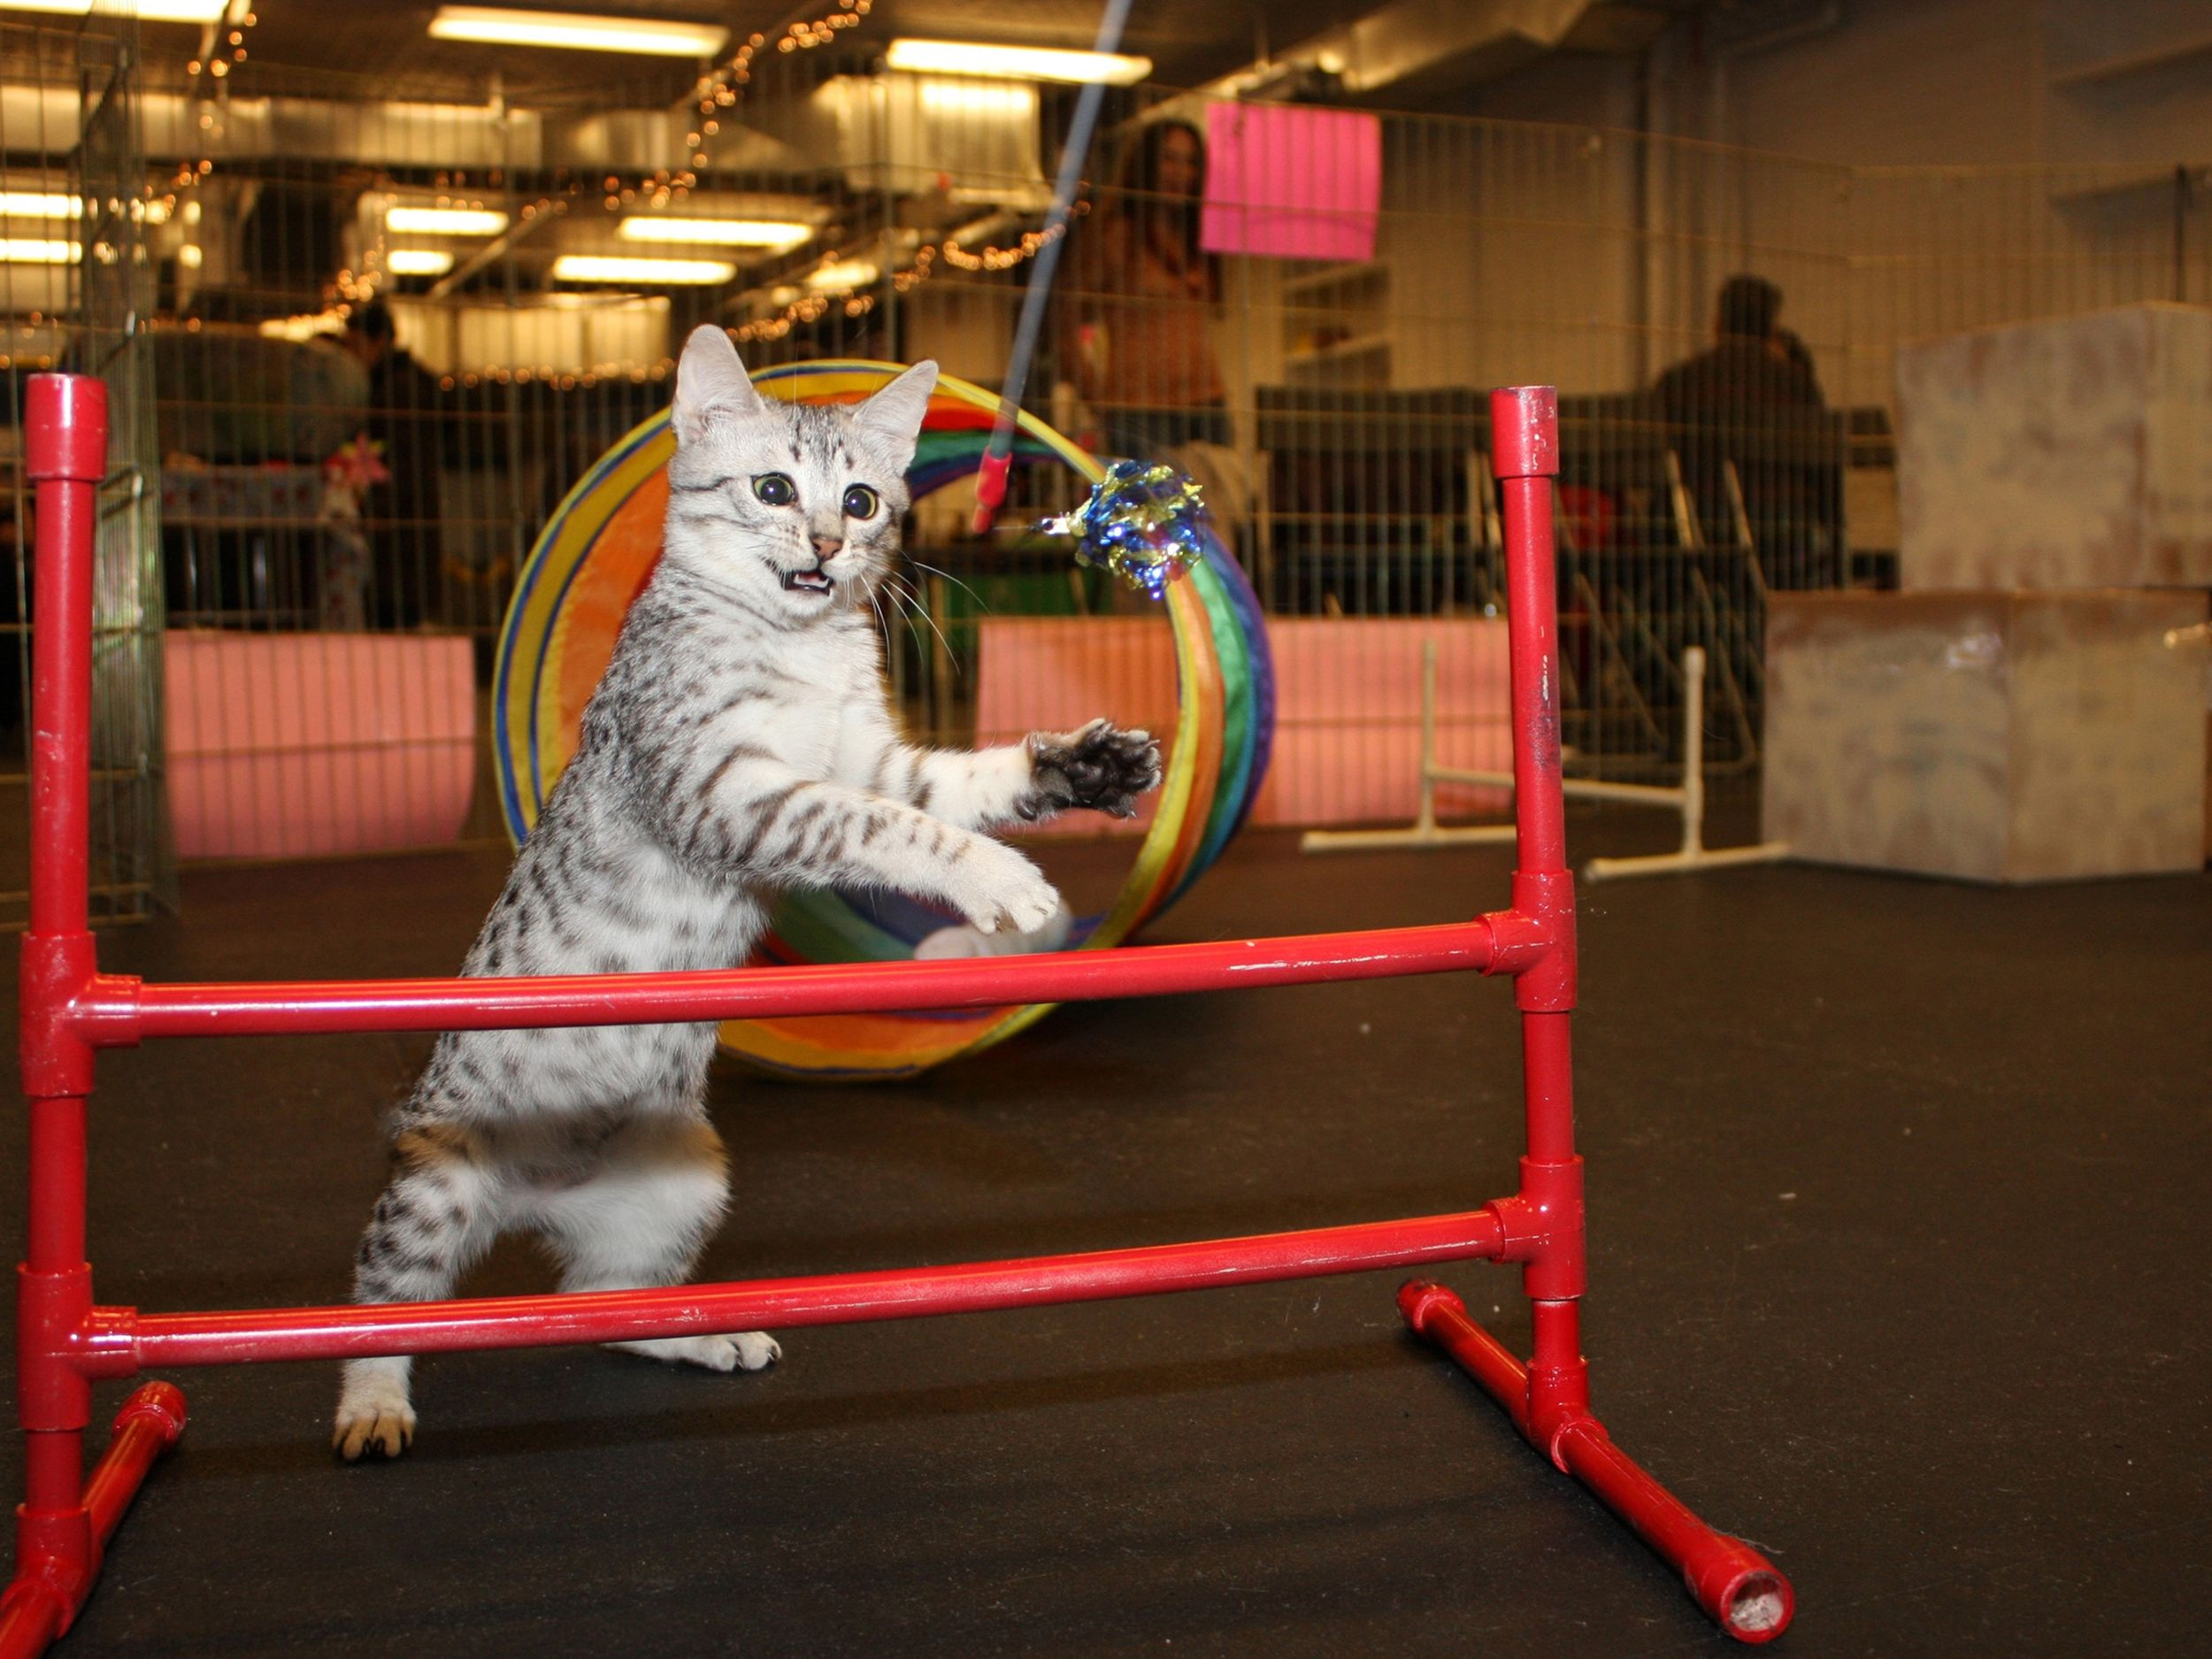 Felines Take To Courses With Catlike Precision The Spokesman Review